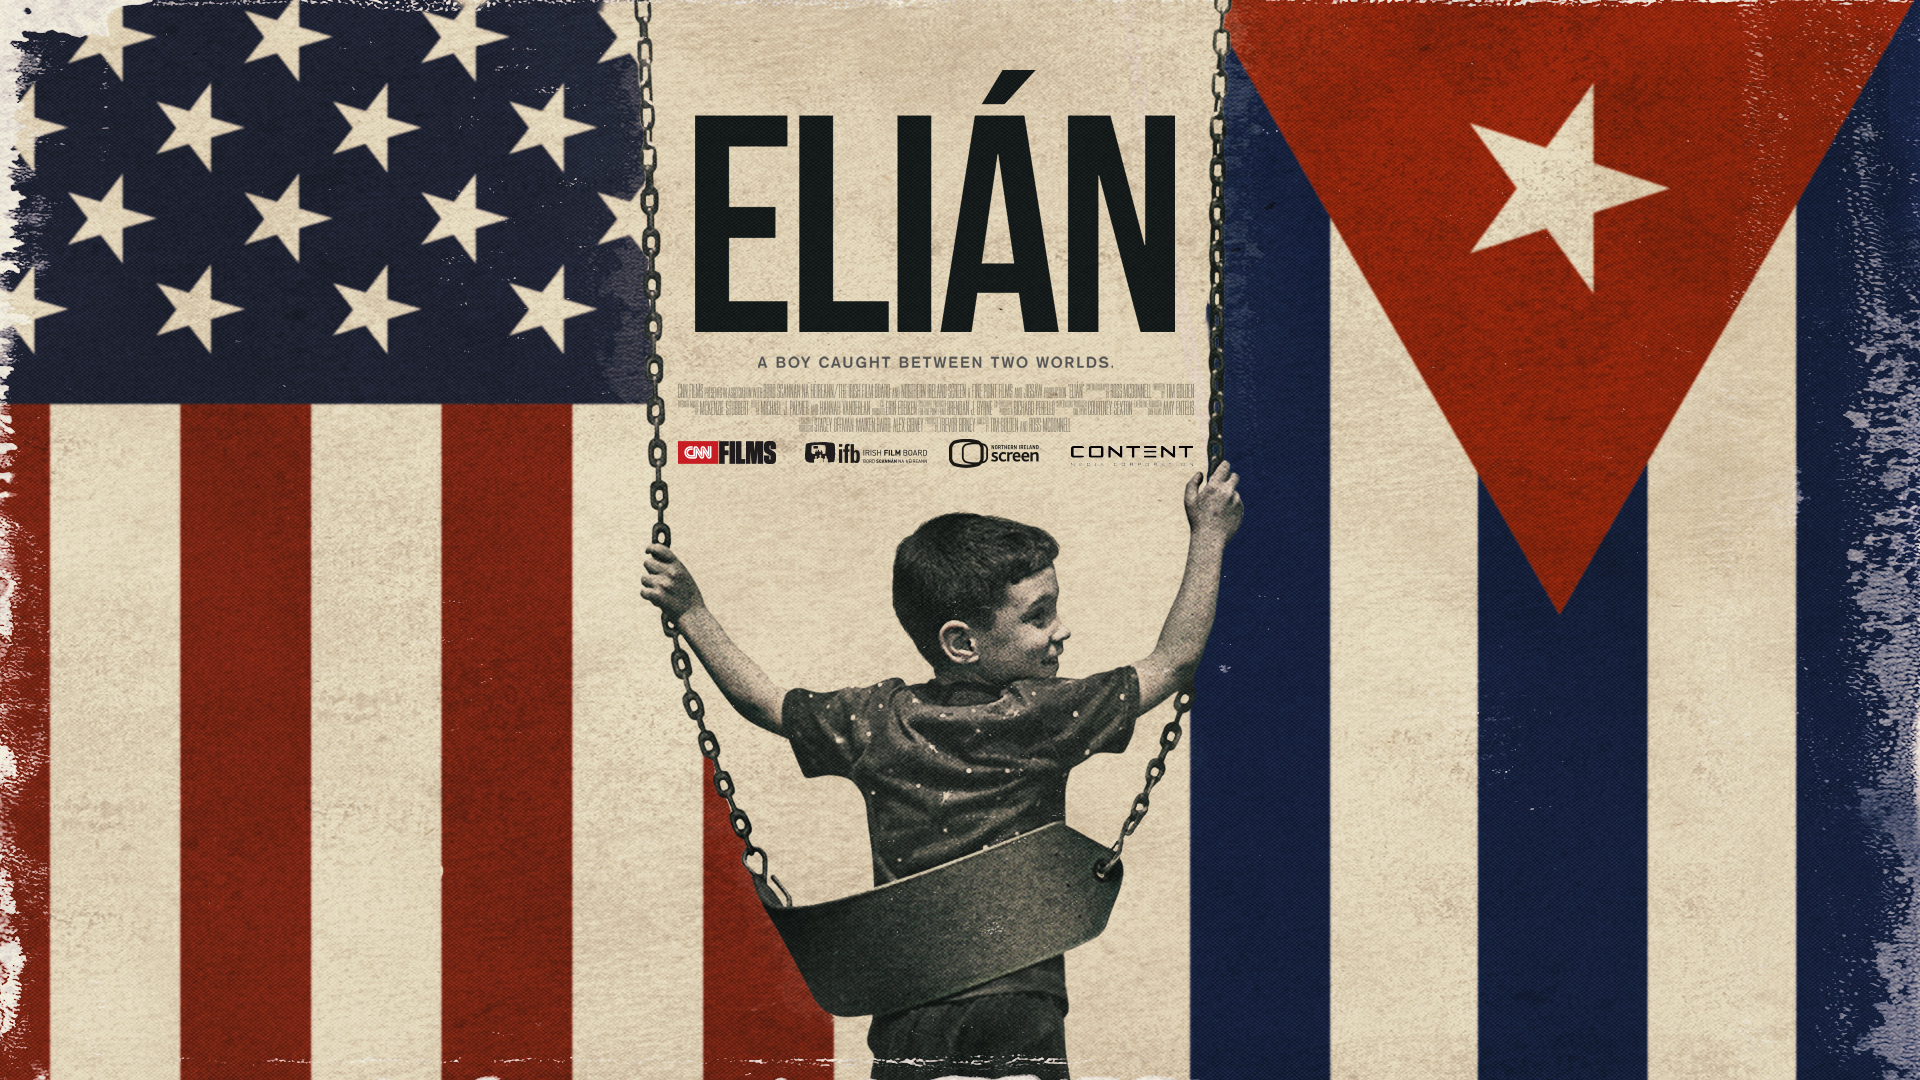 ELIÁN: A Boy Caught Between Two Worlds, made its original debut at the 2017 Tribeca Film Festival.